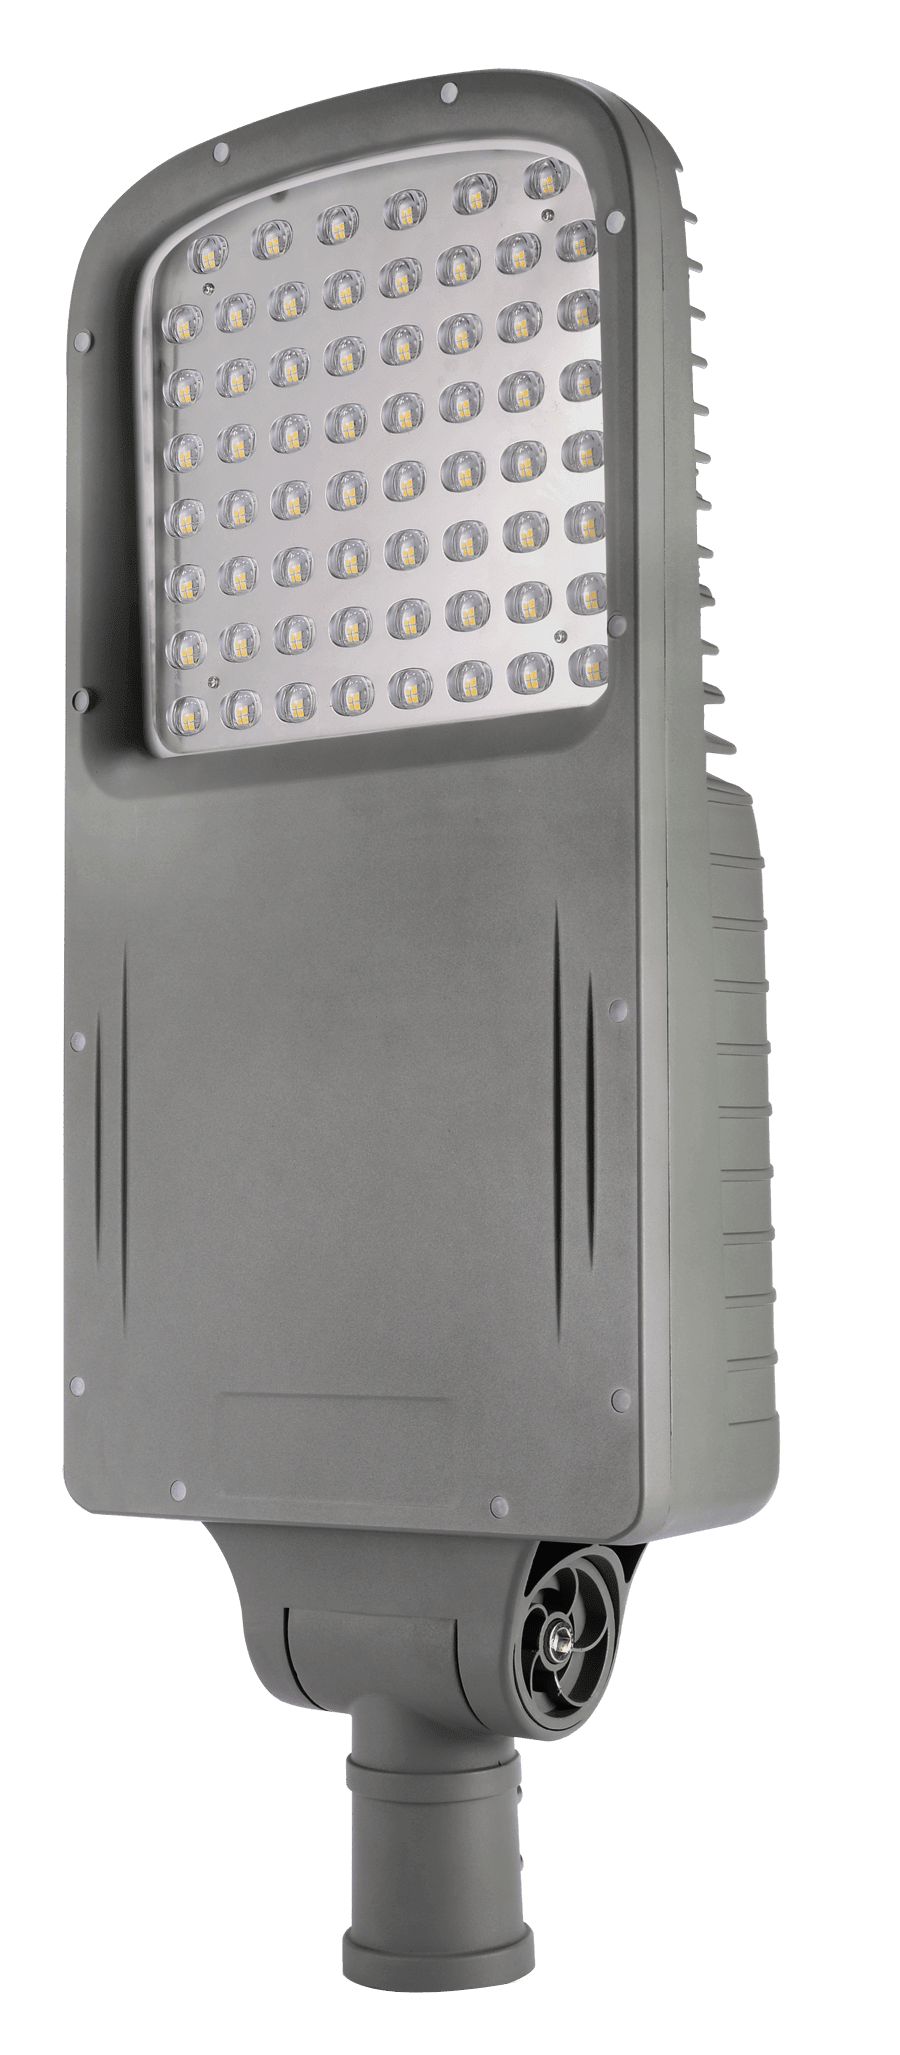 Panzer Solar Streetlight from solar-power